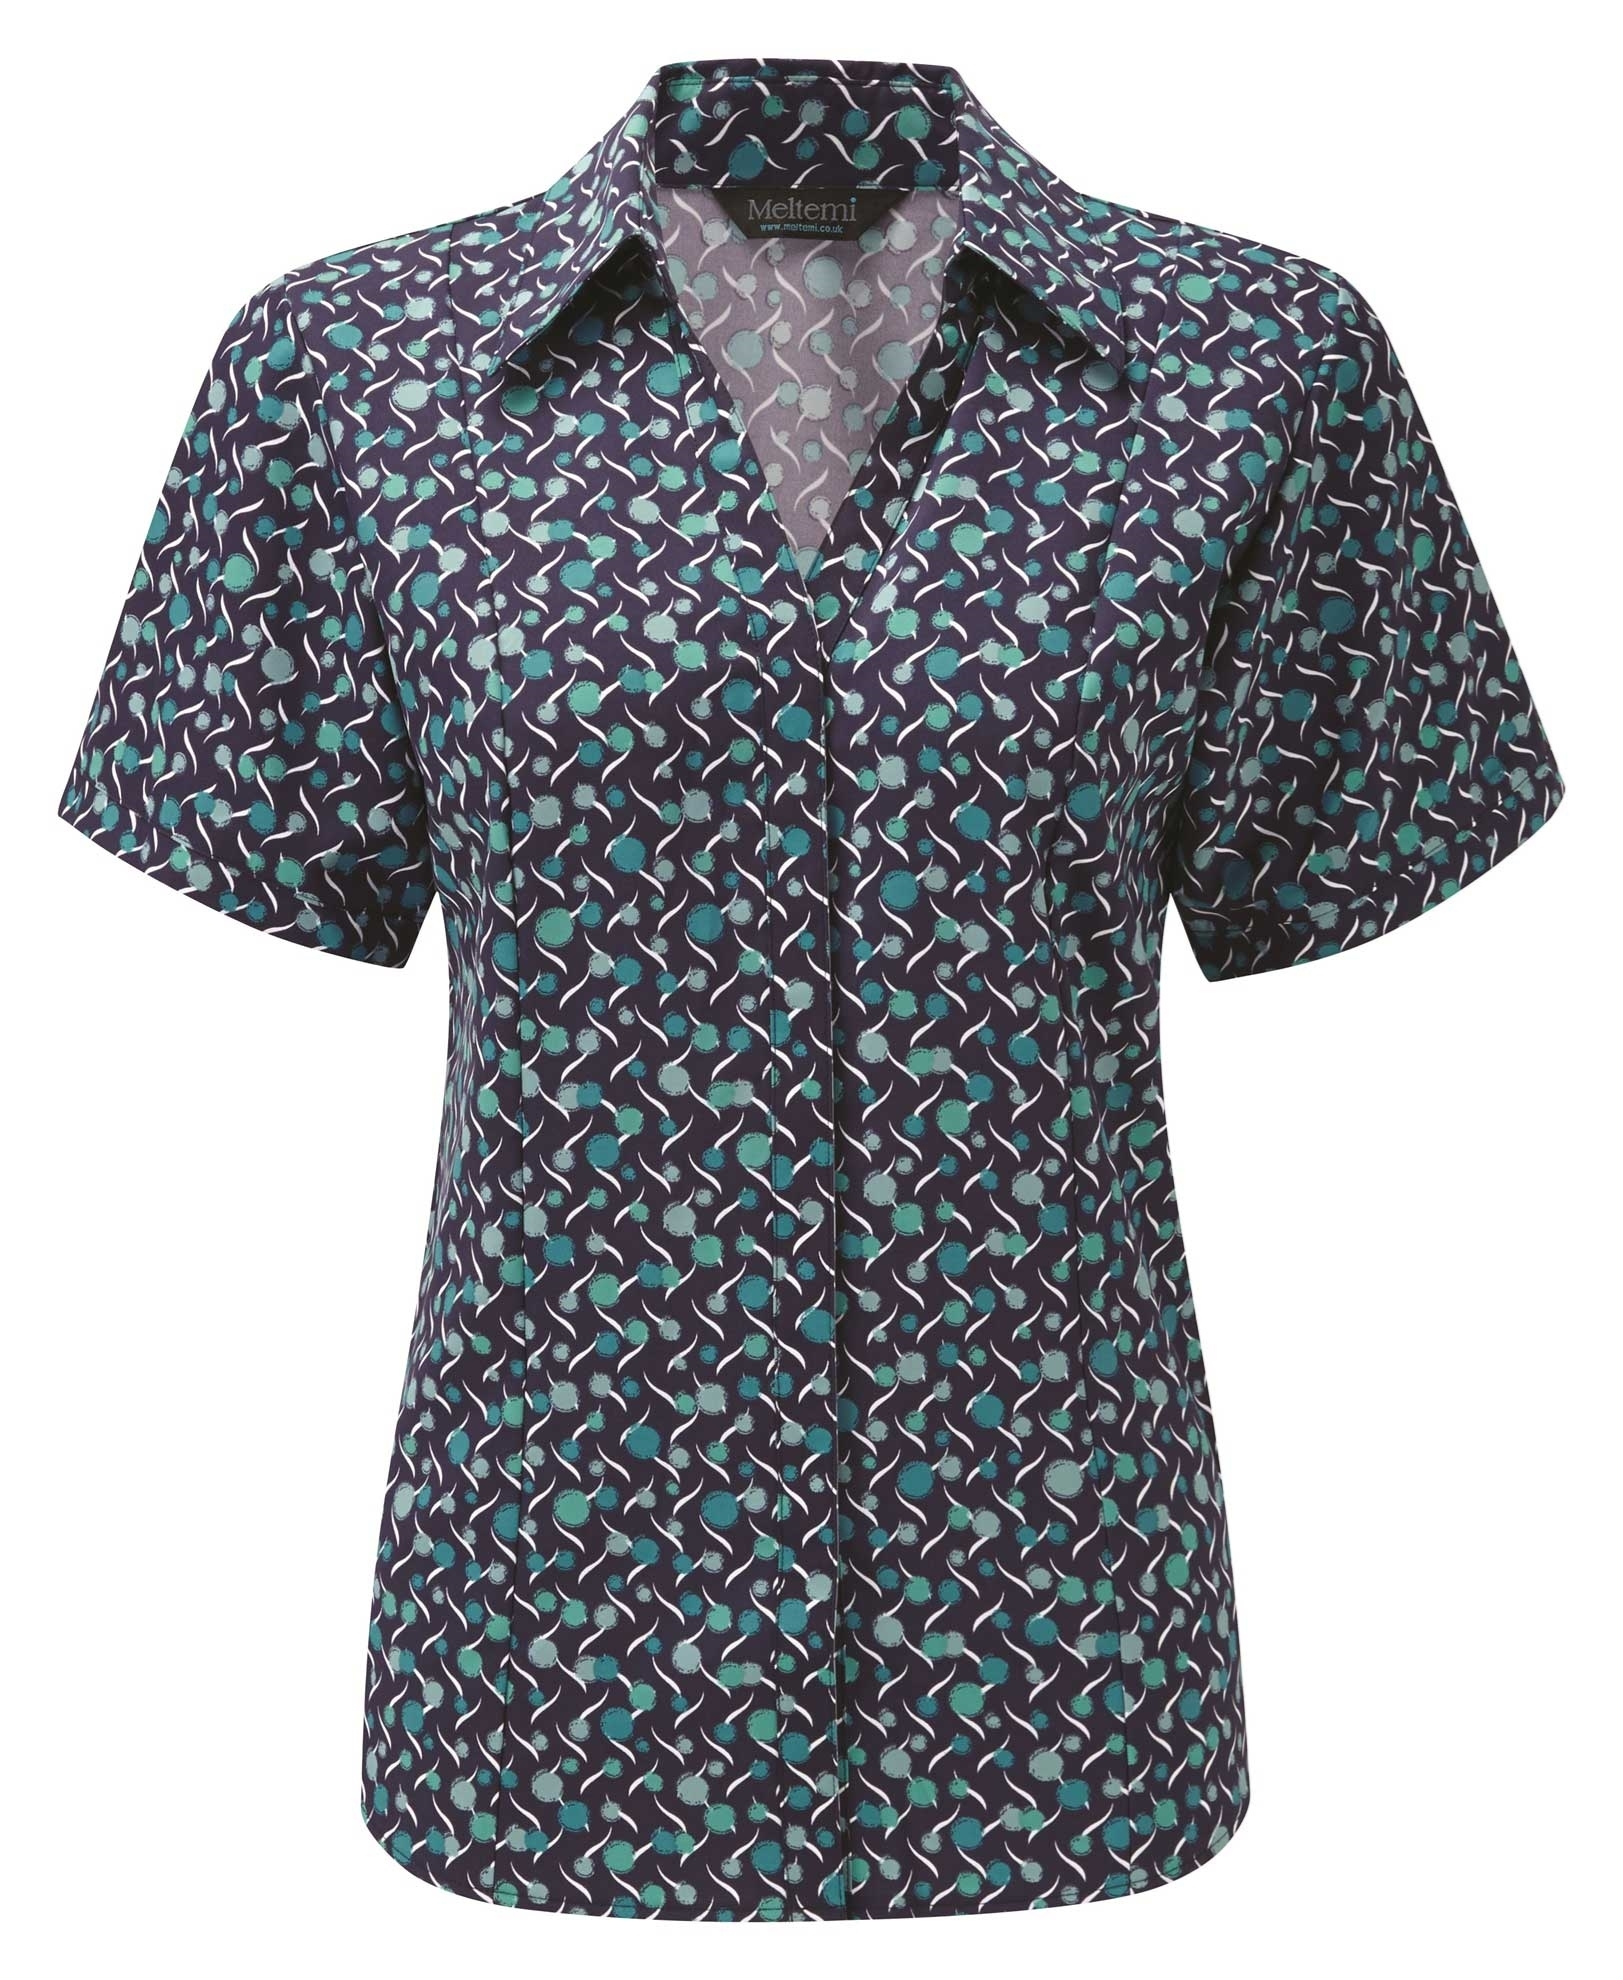 Picture of Semi-Fitted Coolweave Blouse - Navy/Aqua Chloe Print